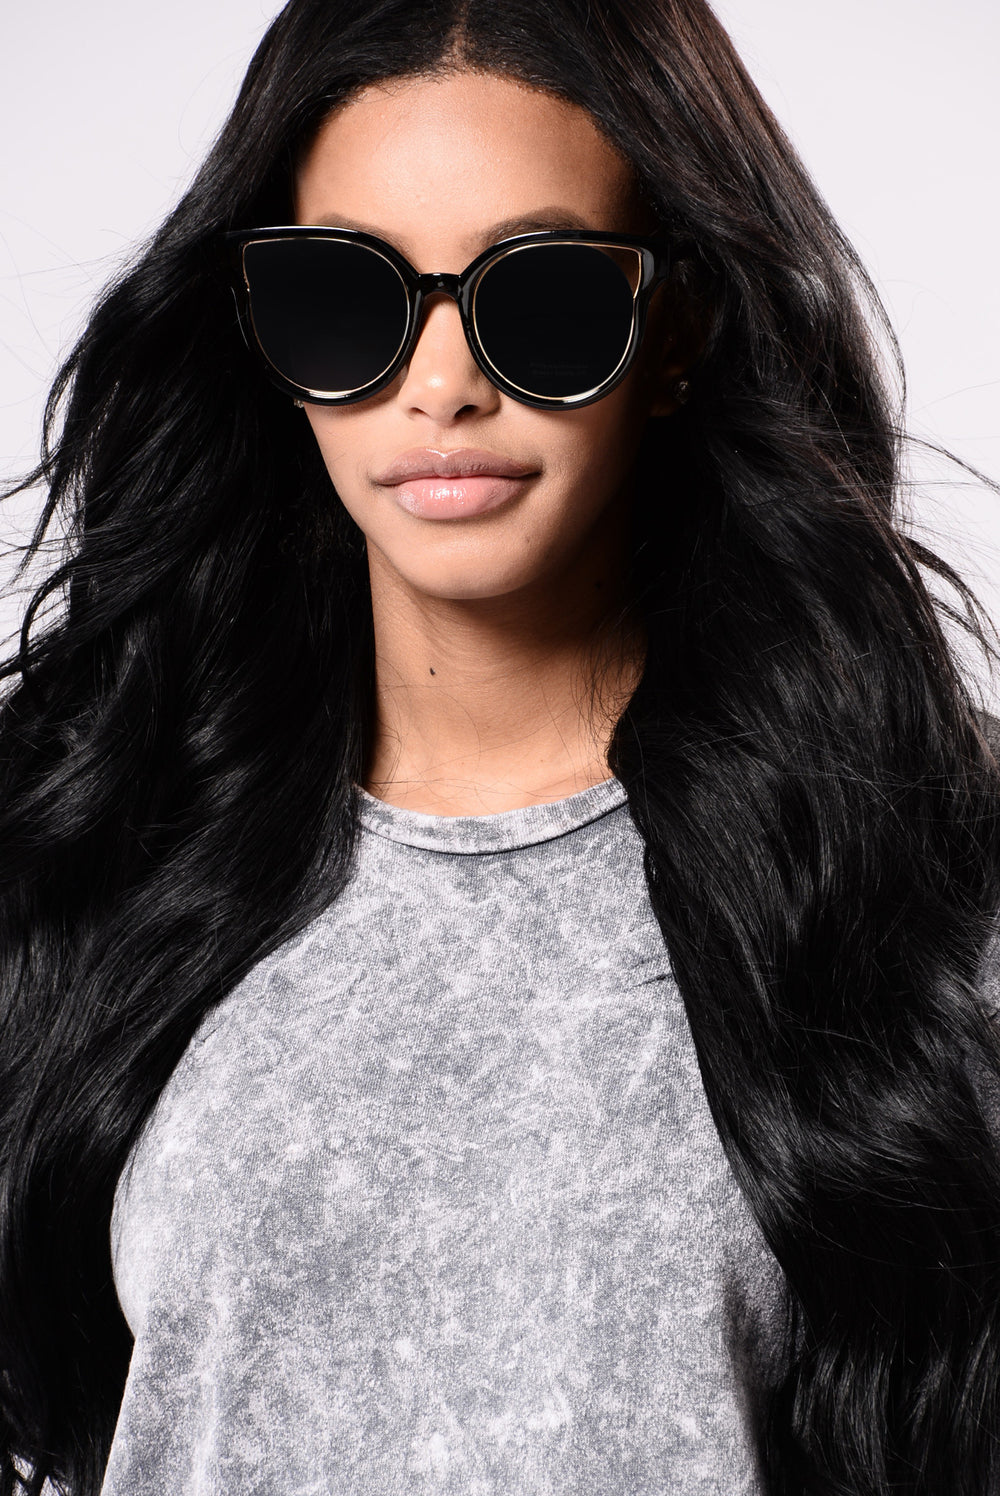 Megan Sunglasses - White